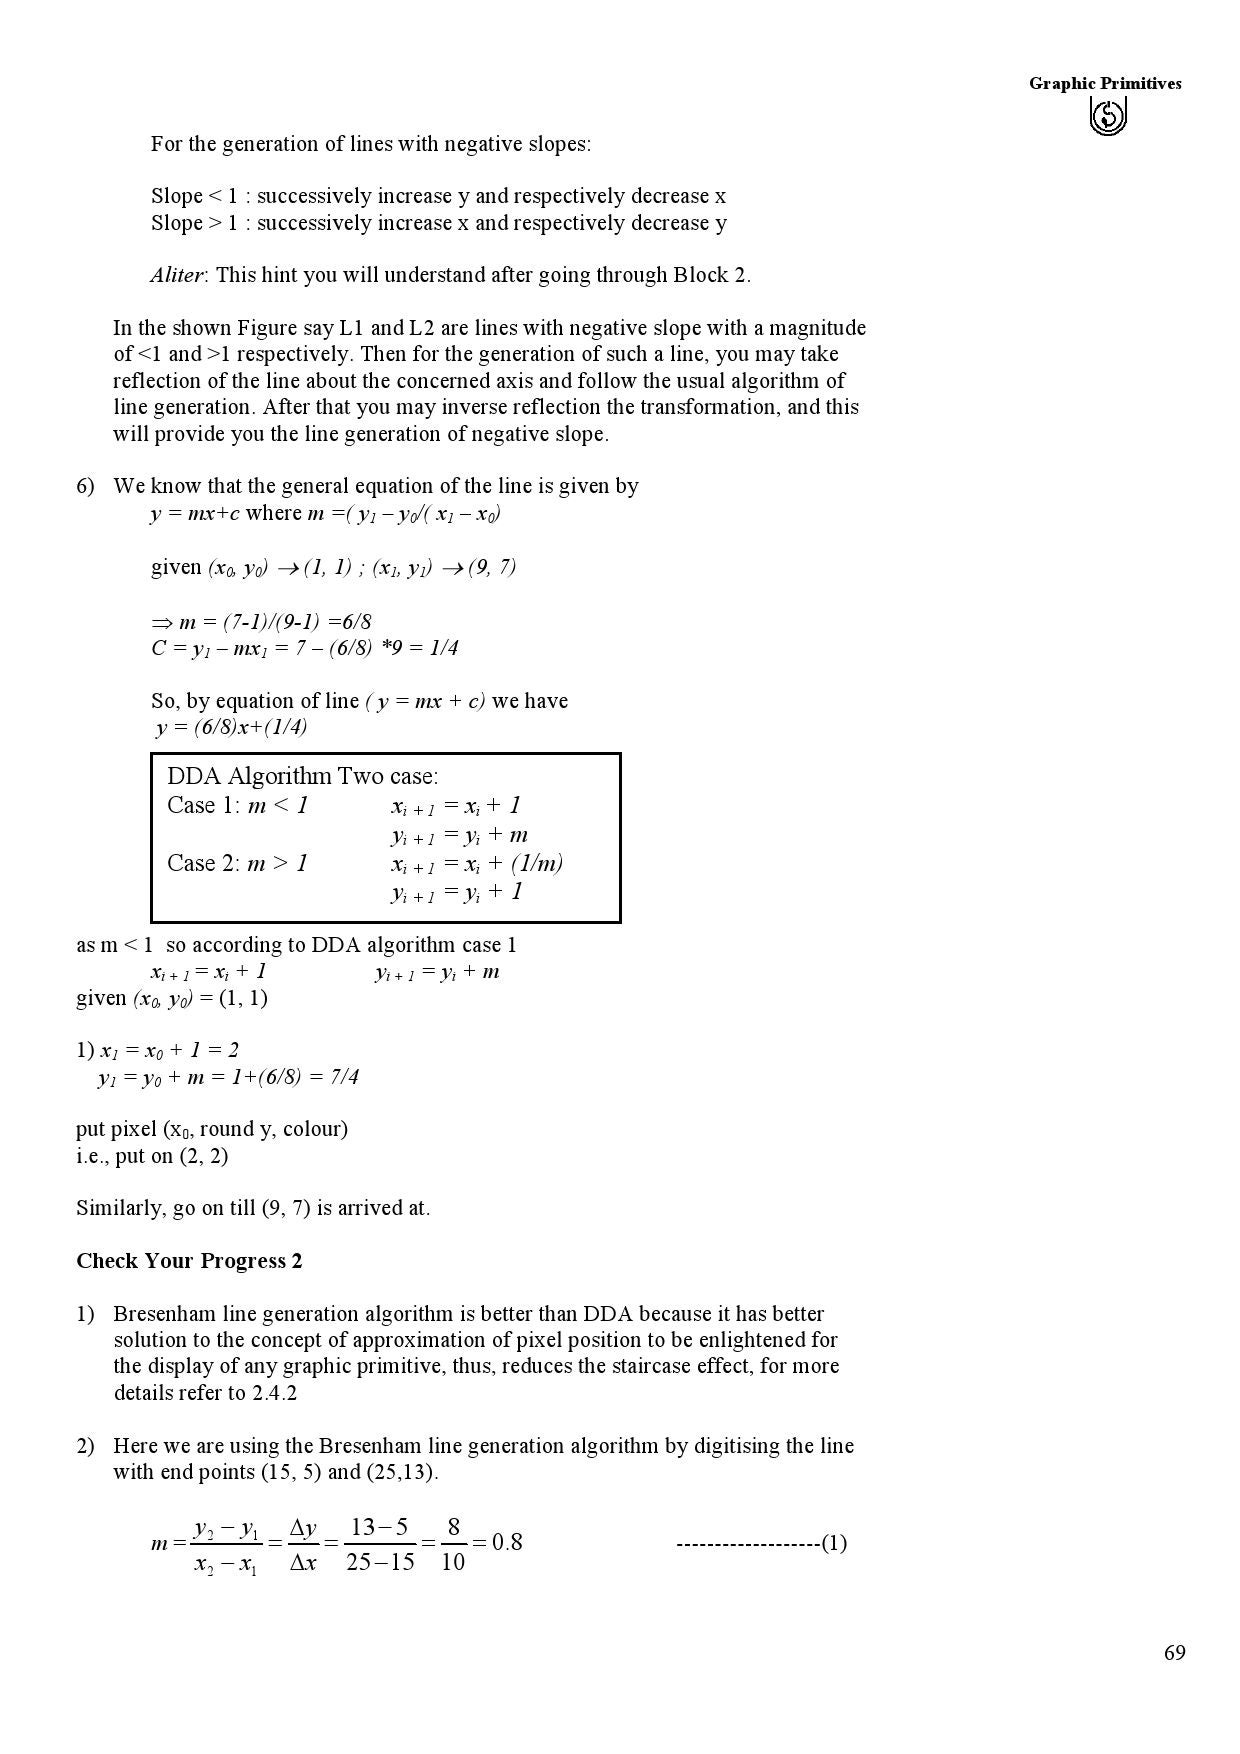 Dda Line Drawing Algorithm For Negative Slope In C : Mcs ignou study material by mca issuu